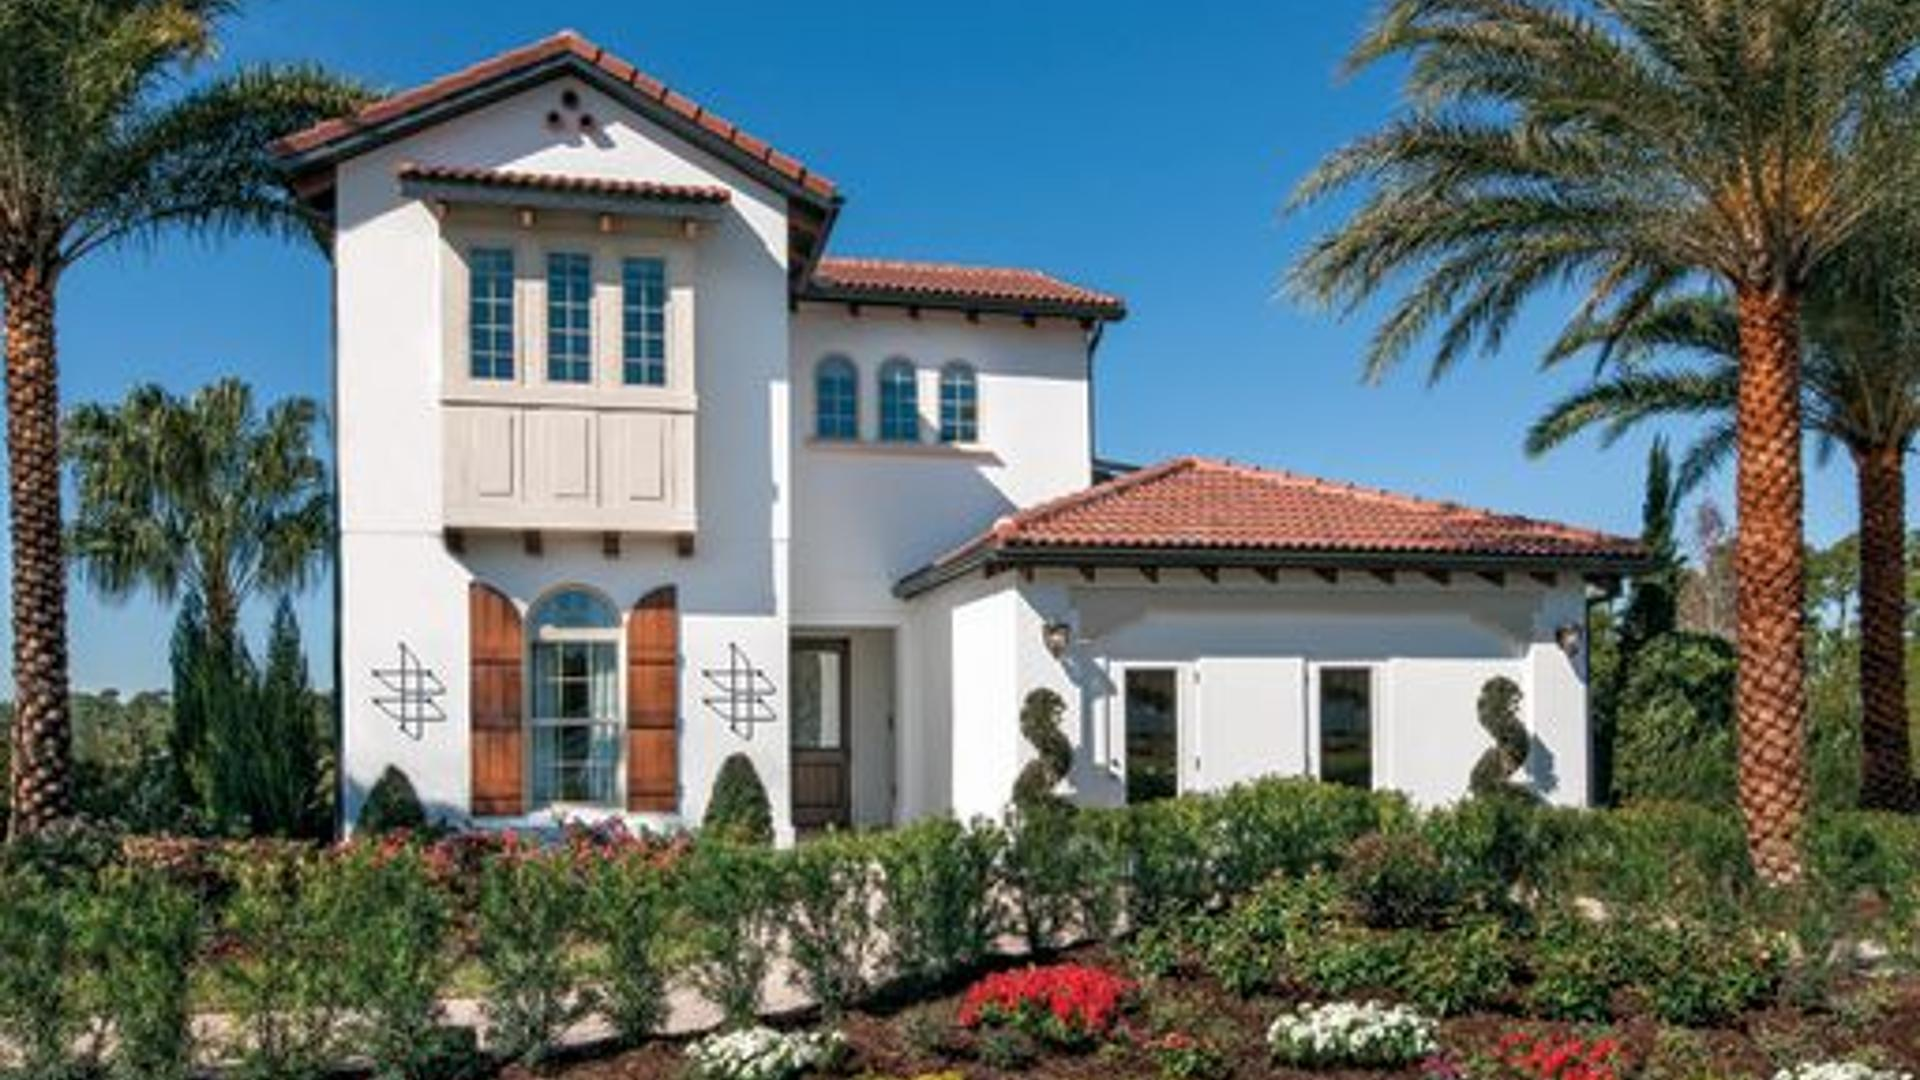 Massiano Spanish Colonial with second story